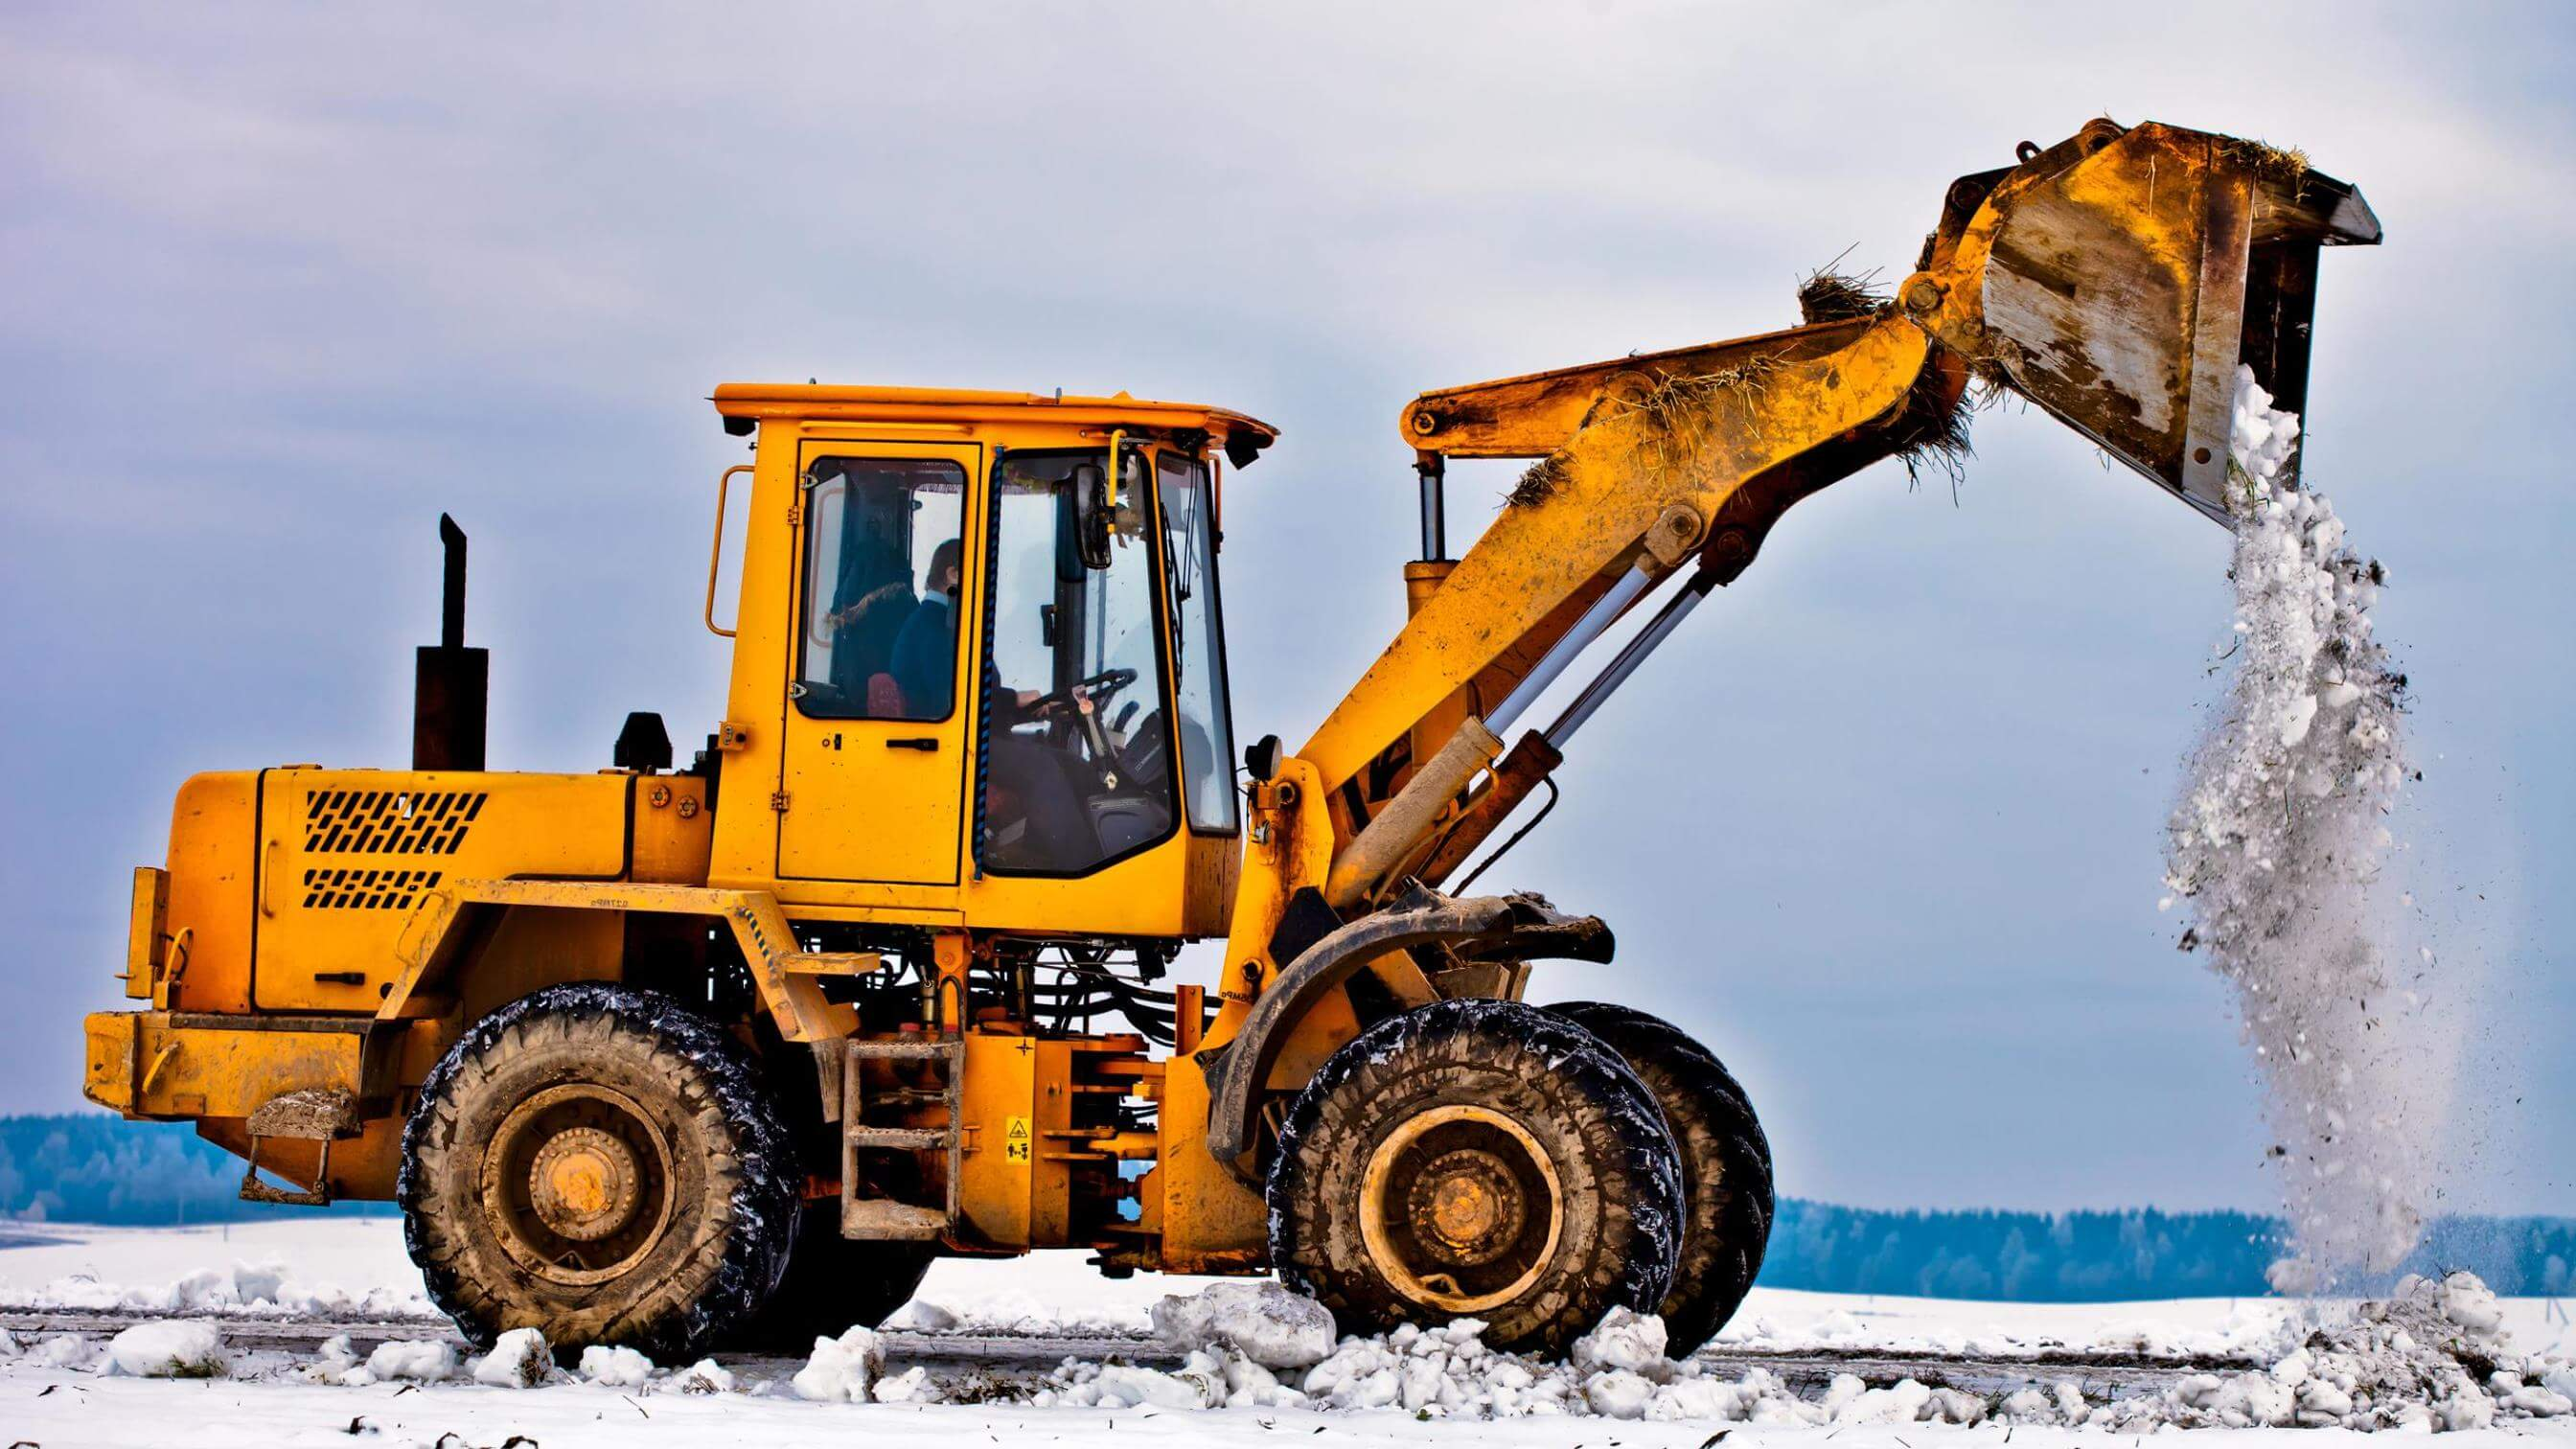 Wheel loader machine removing snow